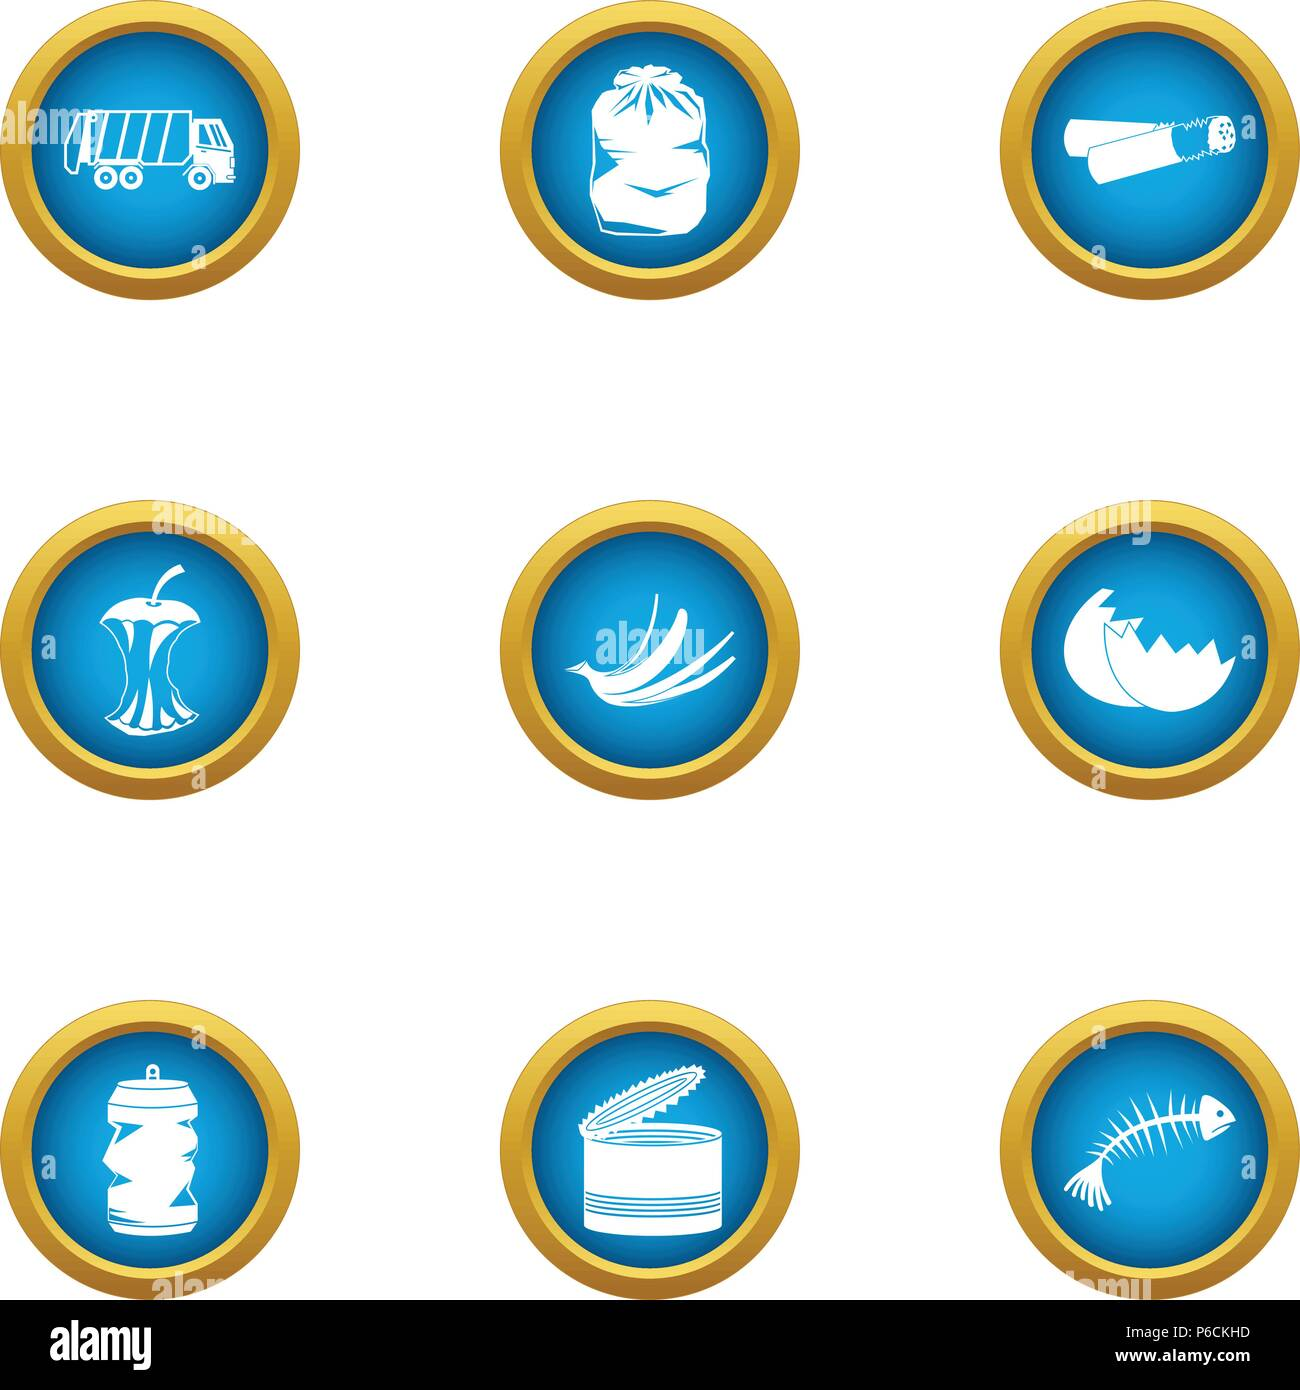 Landfill icons set, flat style - Stock Vector